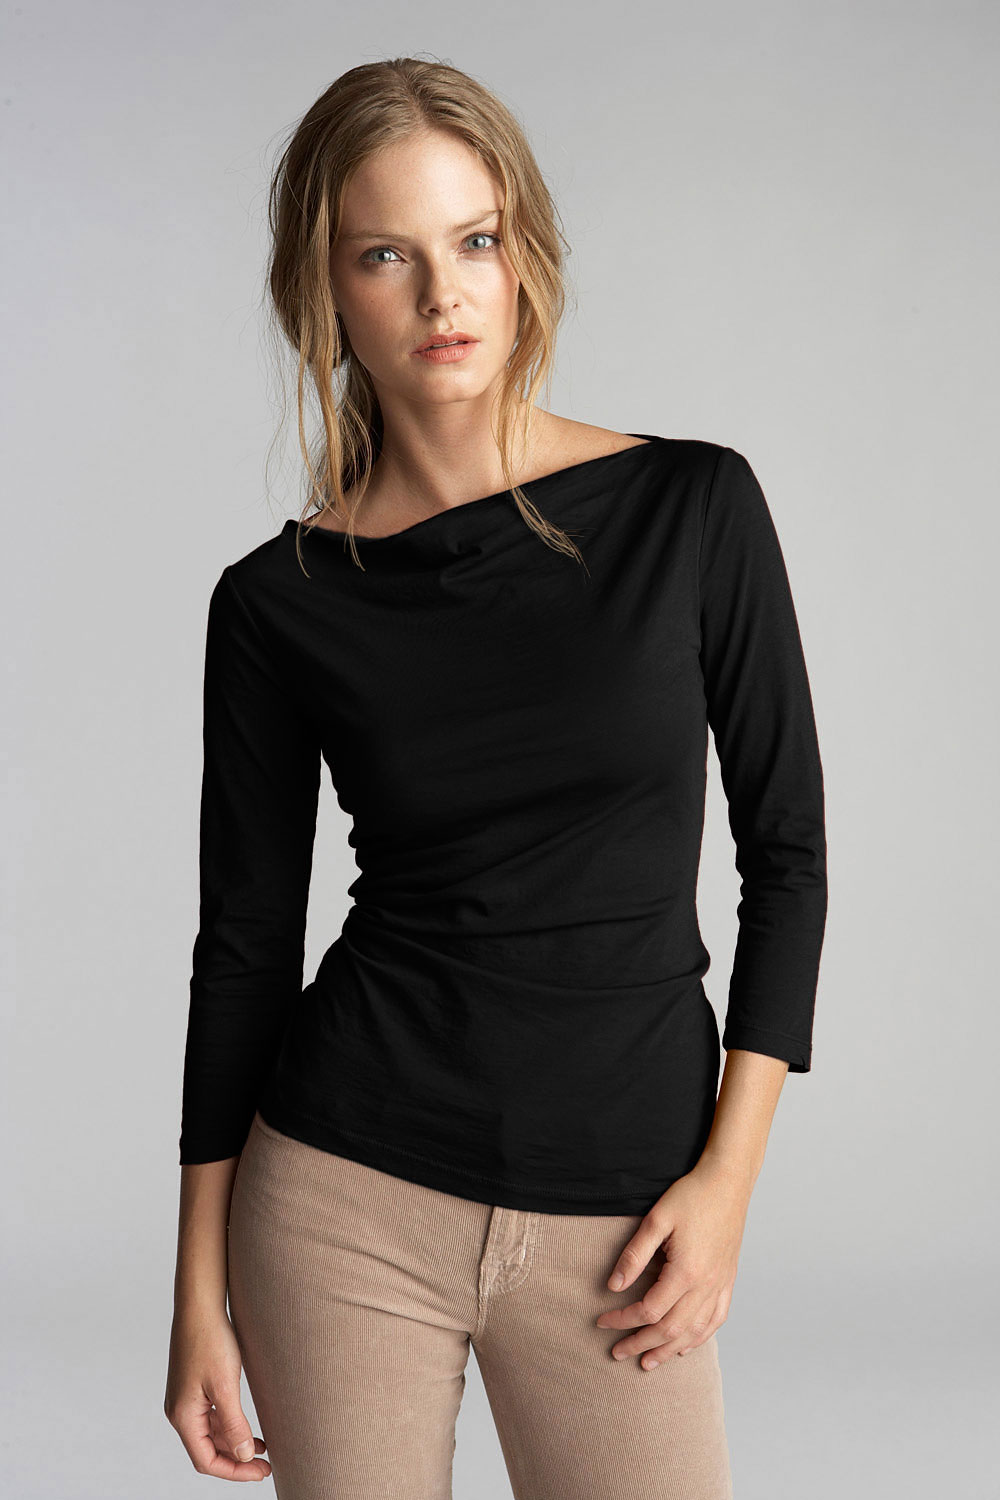 Nod to nautical style with this stretch cotton top featuring cropped sleeves and fold-over cuffs.